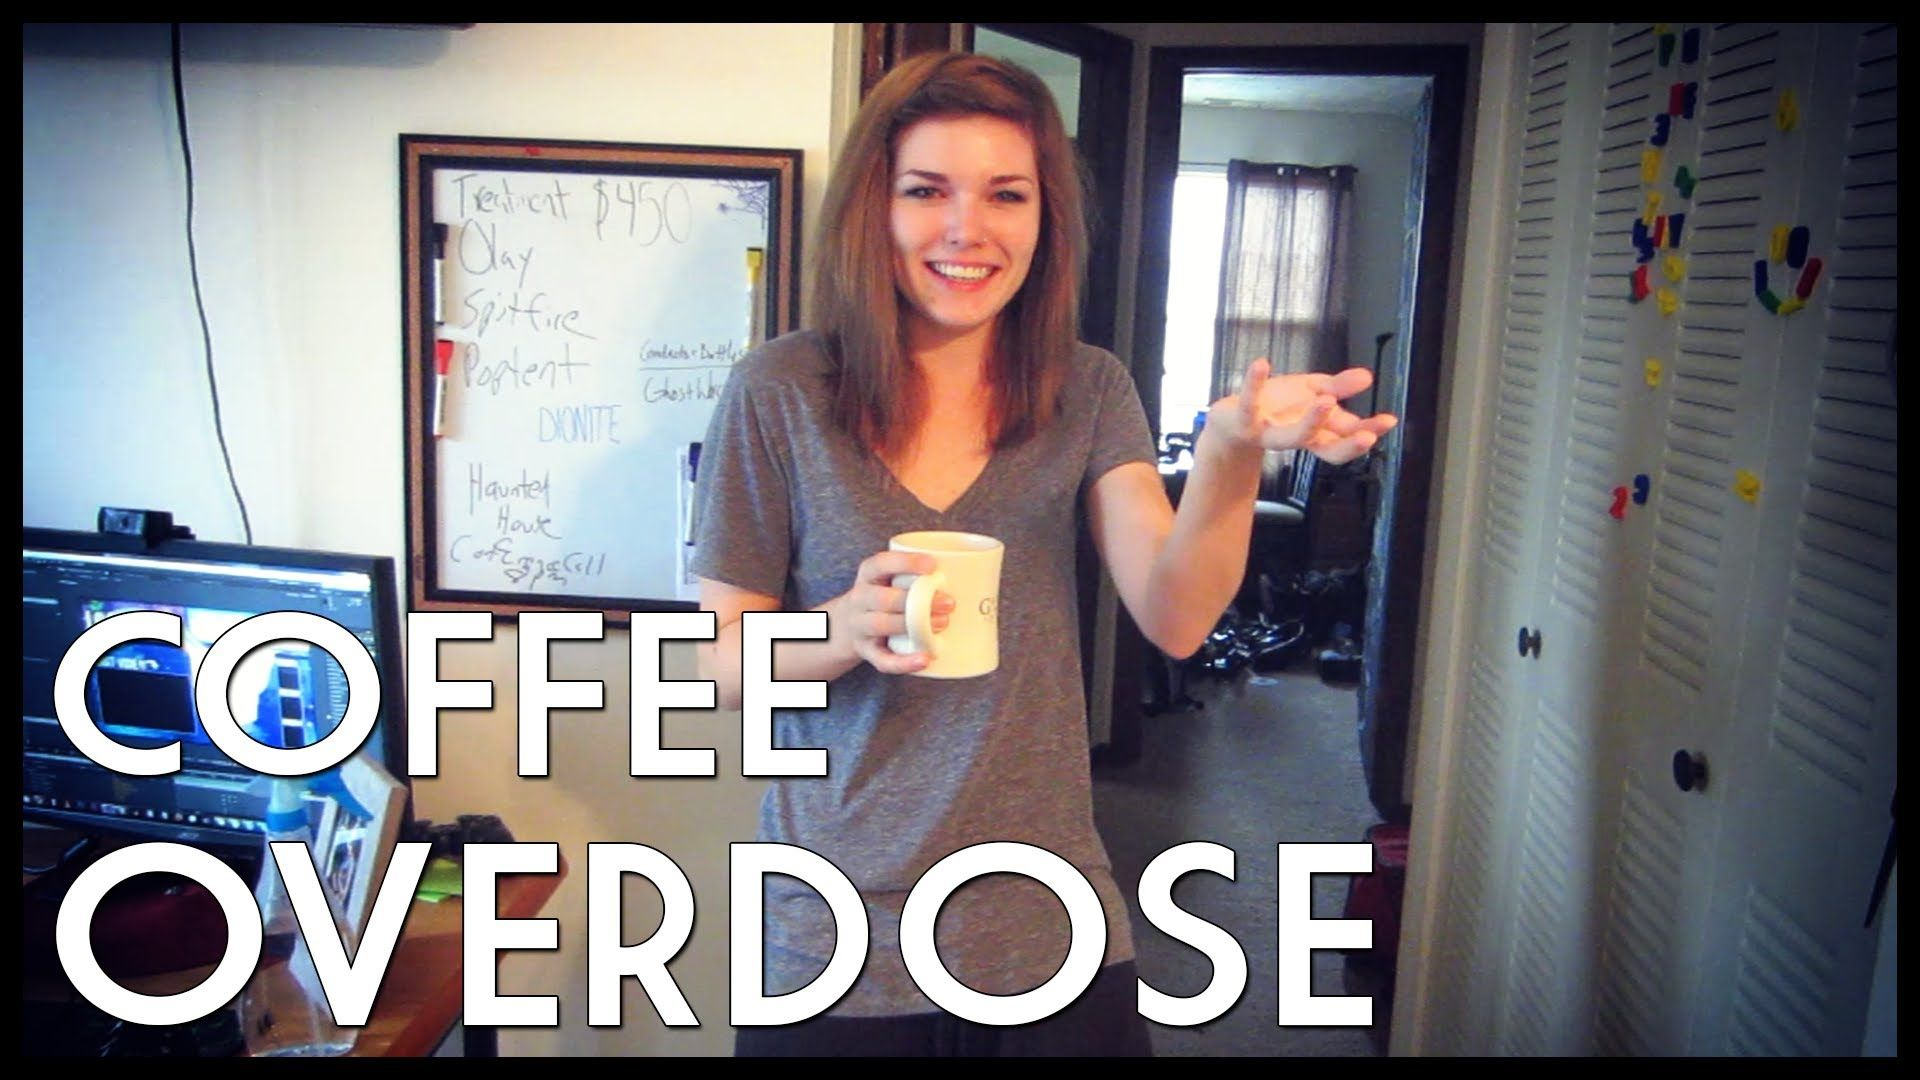 WE HAD A COFFEE OVERDOSE!